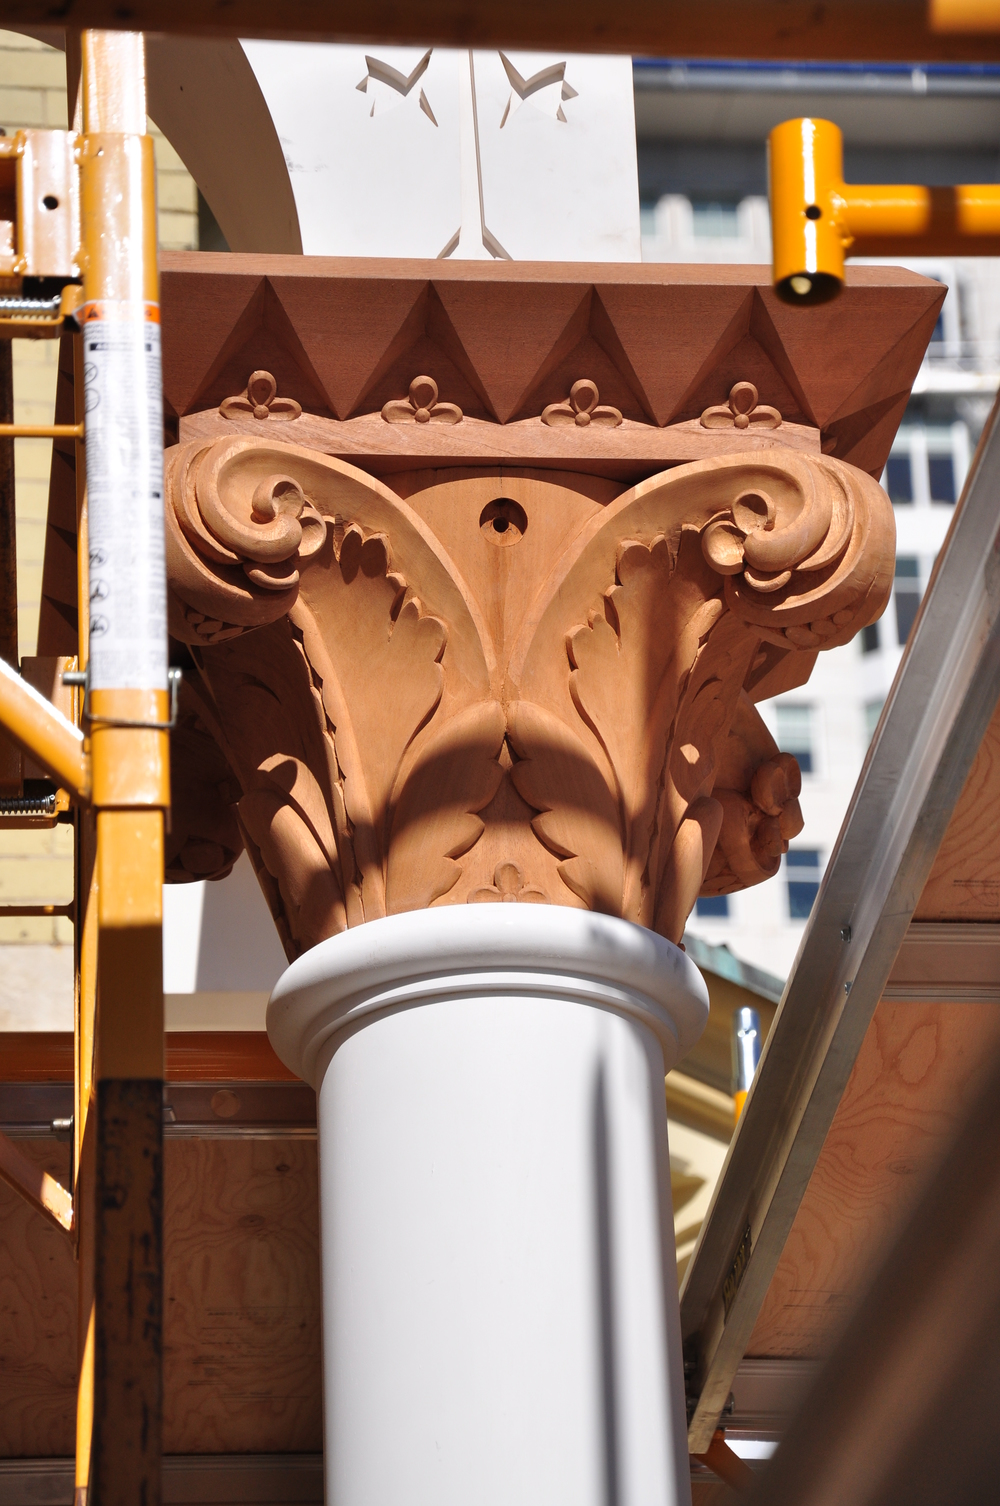 One of the full capitals during installation